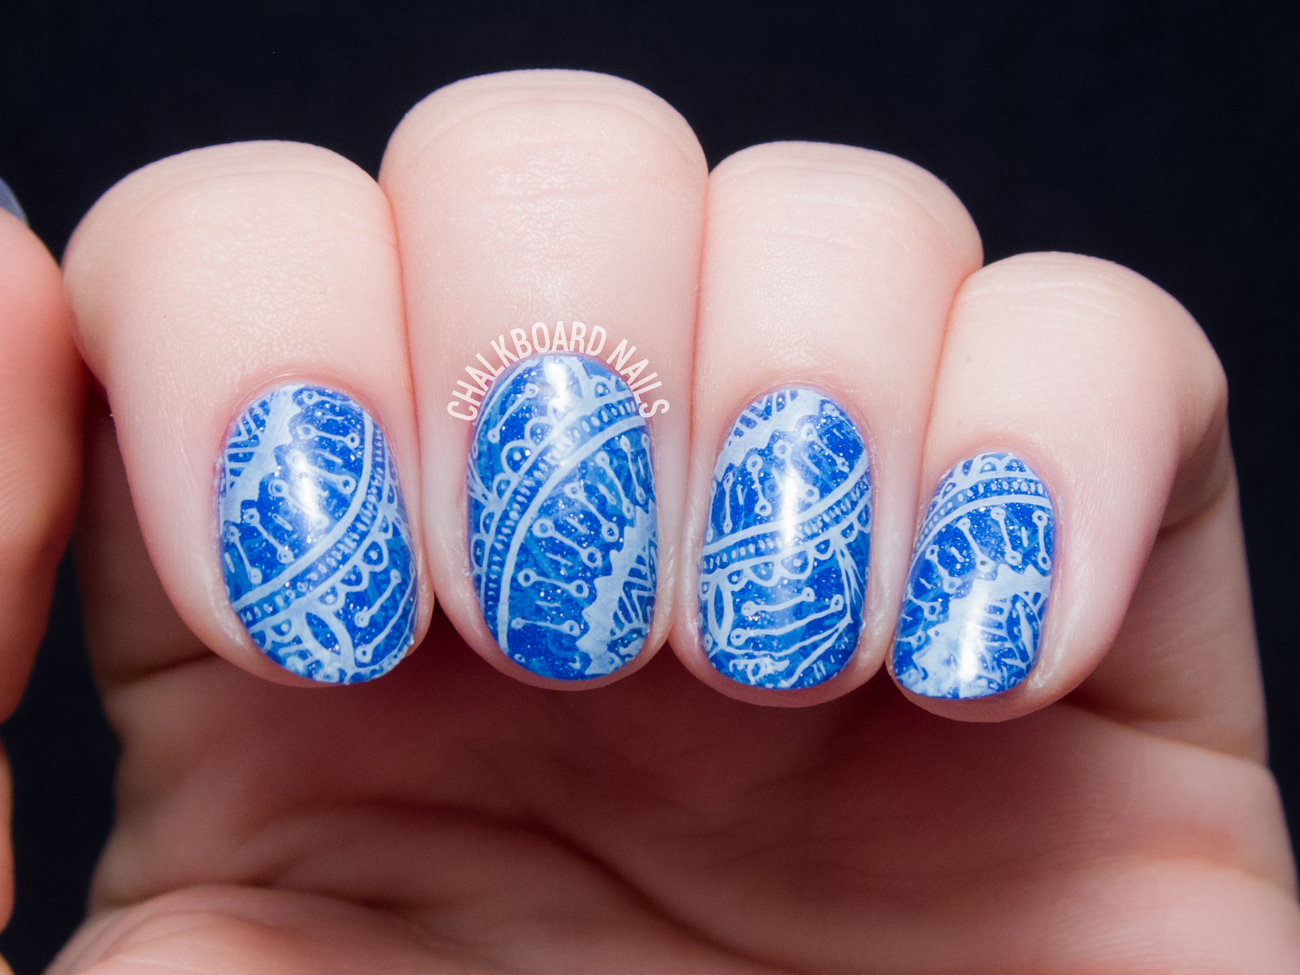 Blue stamping nail art by @chalkboardnails